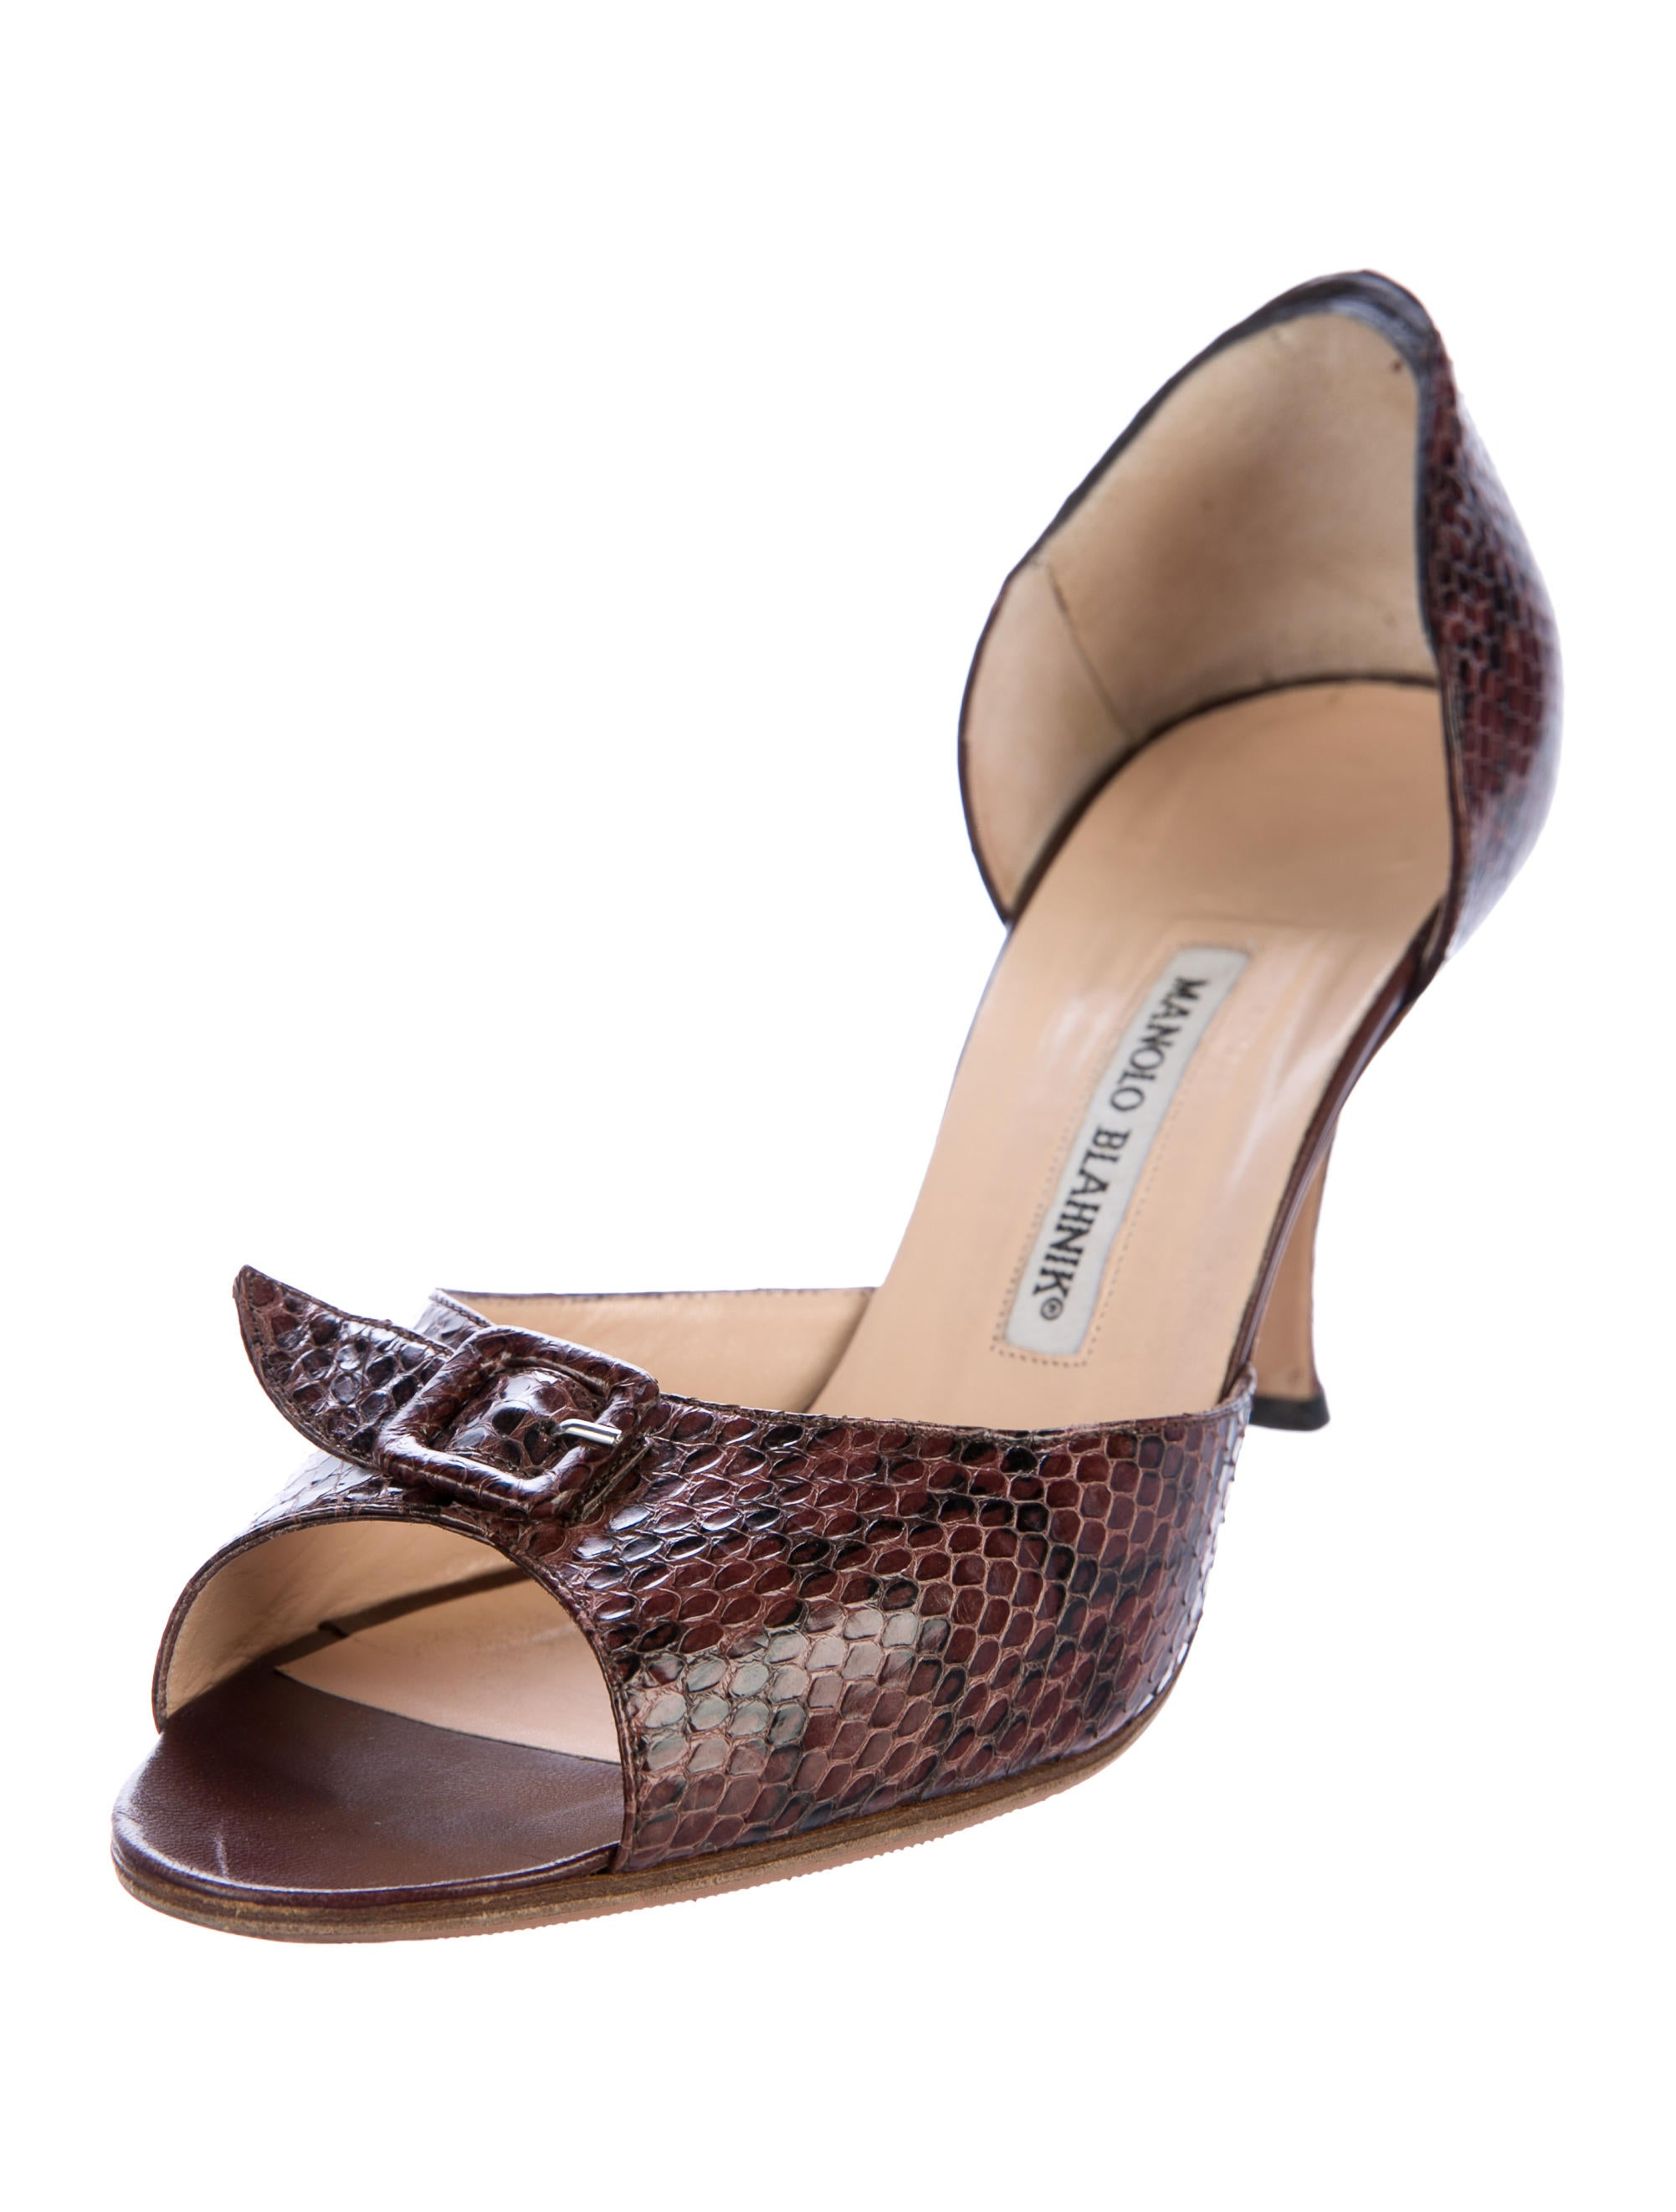 Manolo Blahnik Dipado Snakeskin Pumps buy authentic online cheap cost OubC38j